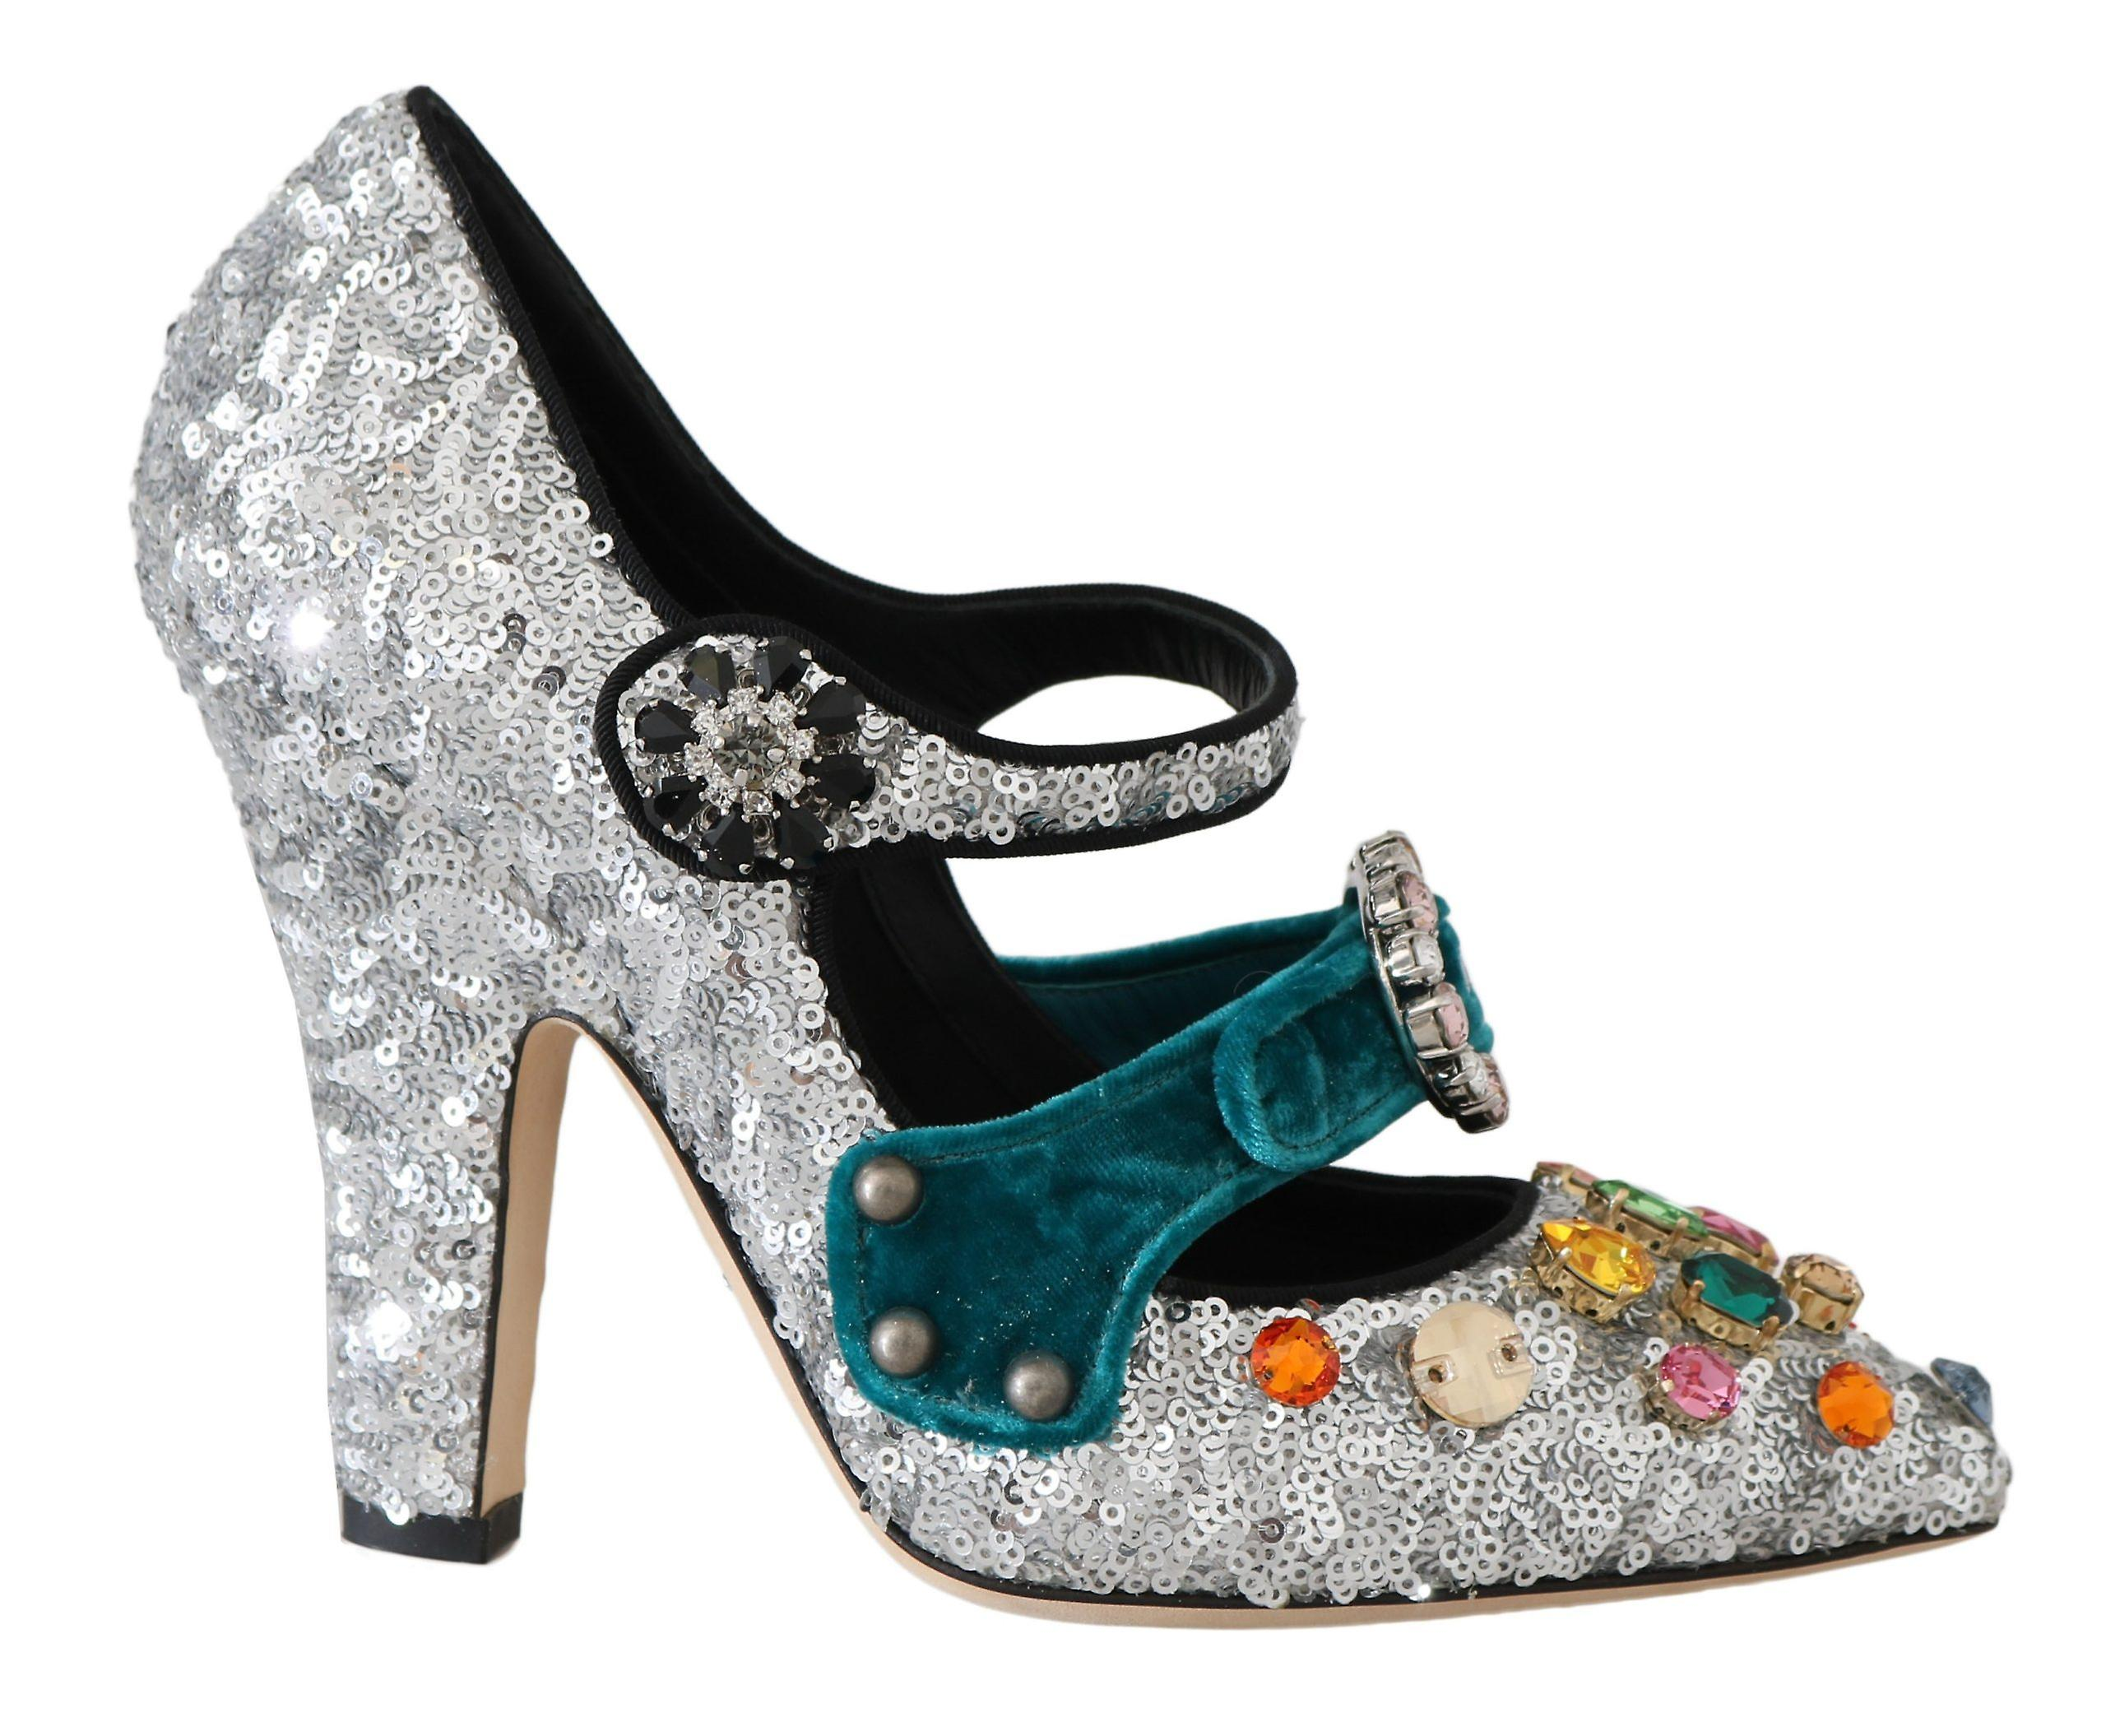 Silver Sequined Crystal Mary Janes Pumps rLBhF